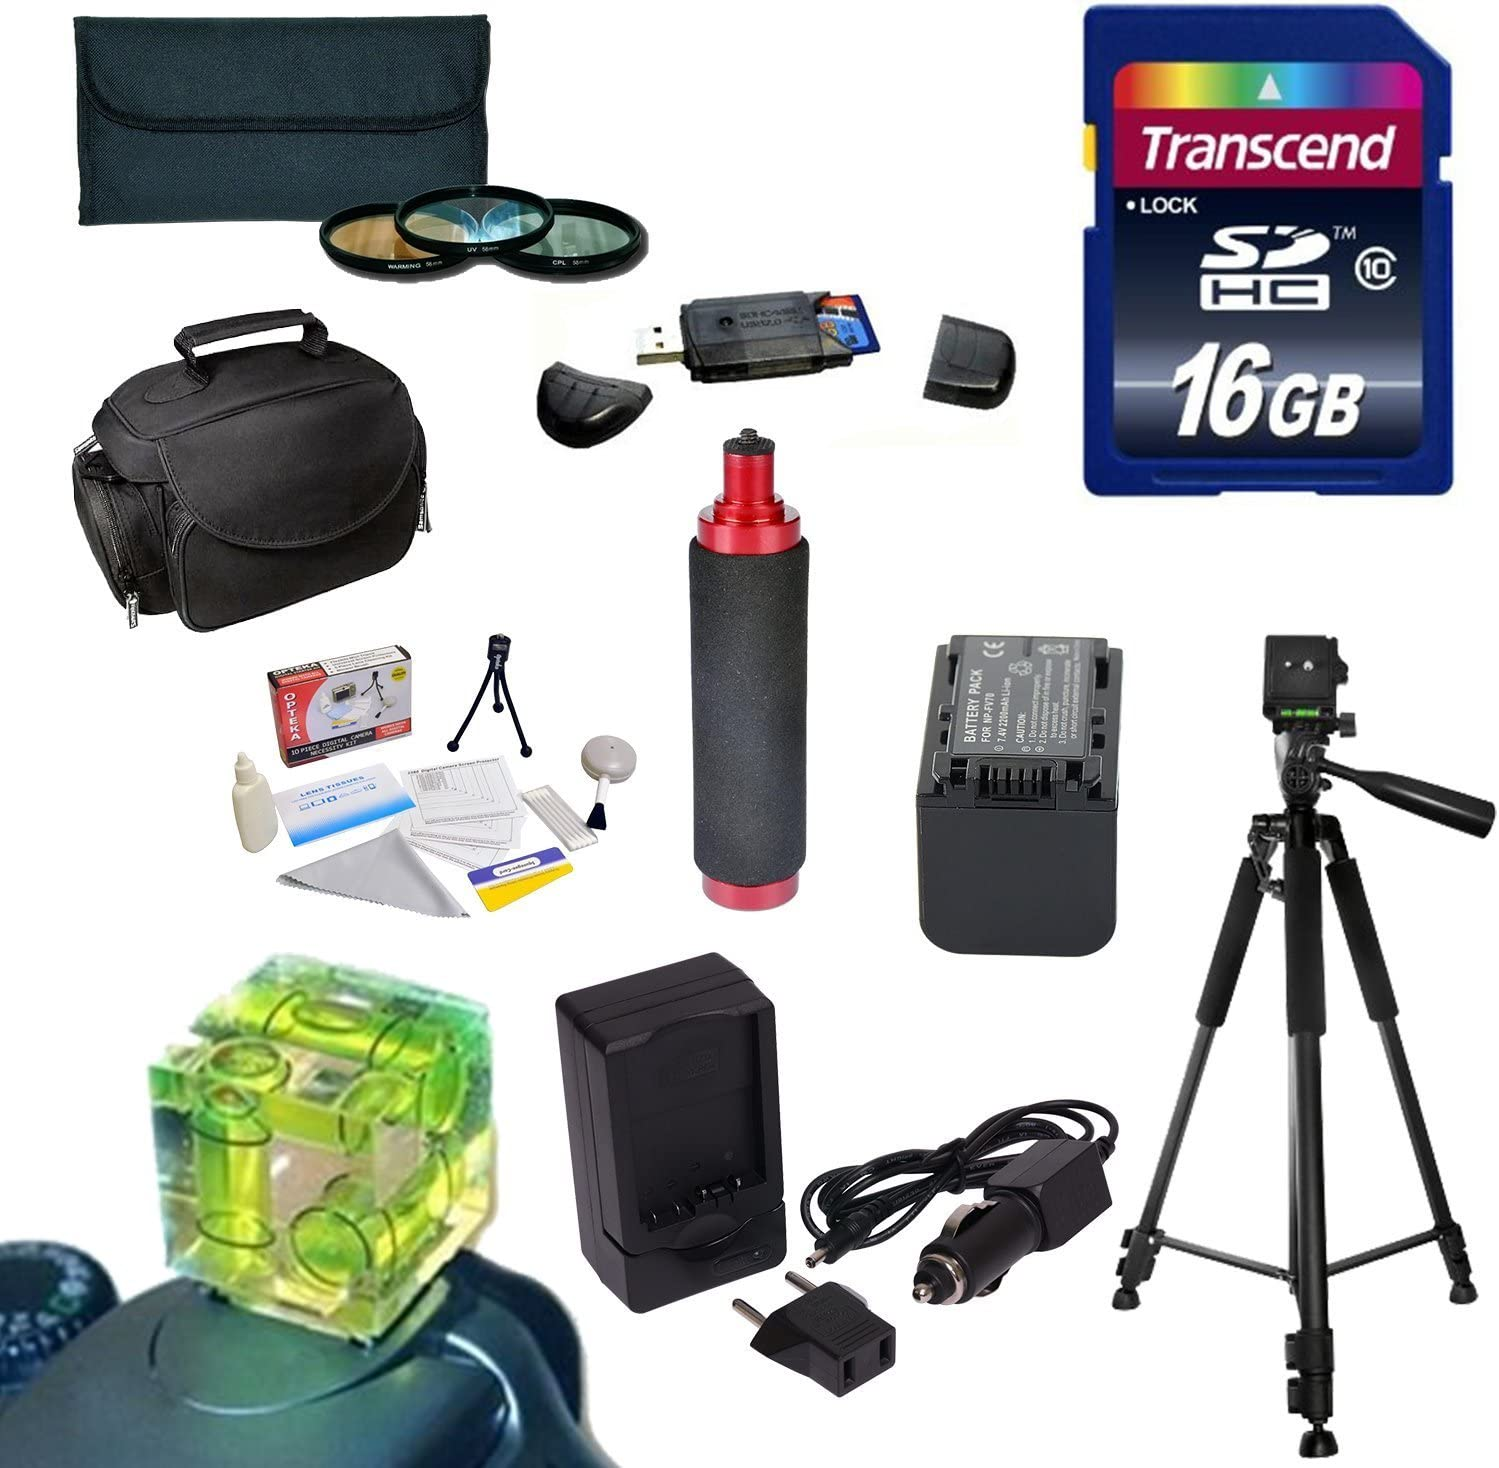 58MM 3 Piece Pro Filter Kit + Sony FV70 Extended Life Replacement Battery 16GB High Speed Error Free SDHC Memory Card SDHC Card Reader UV, CPL, FLD Rapid AC//DC Battery Charger Best Value Accessory Kit for the Sony NEX-VG30 Camcorder Includes 60